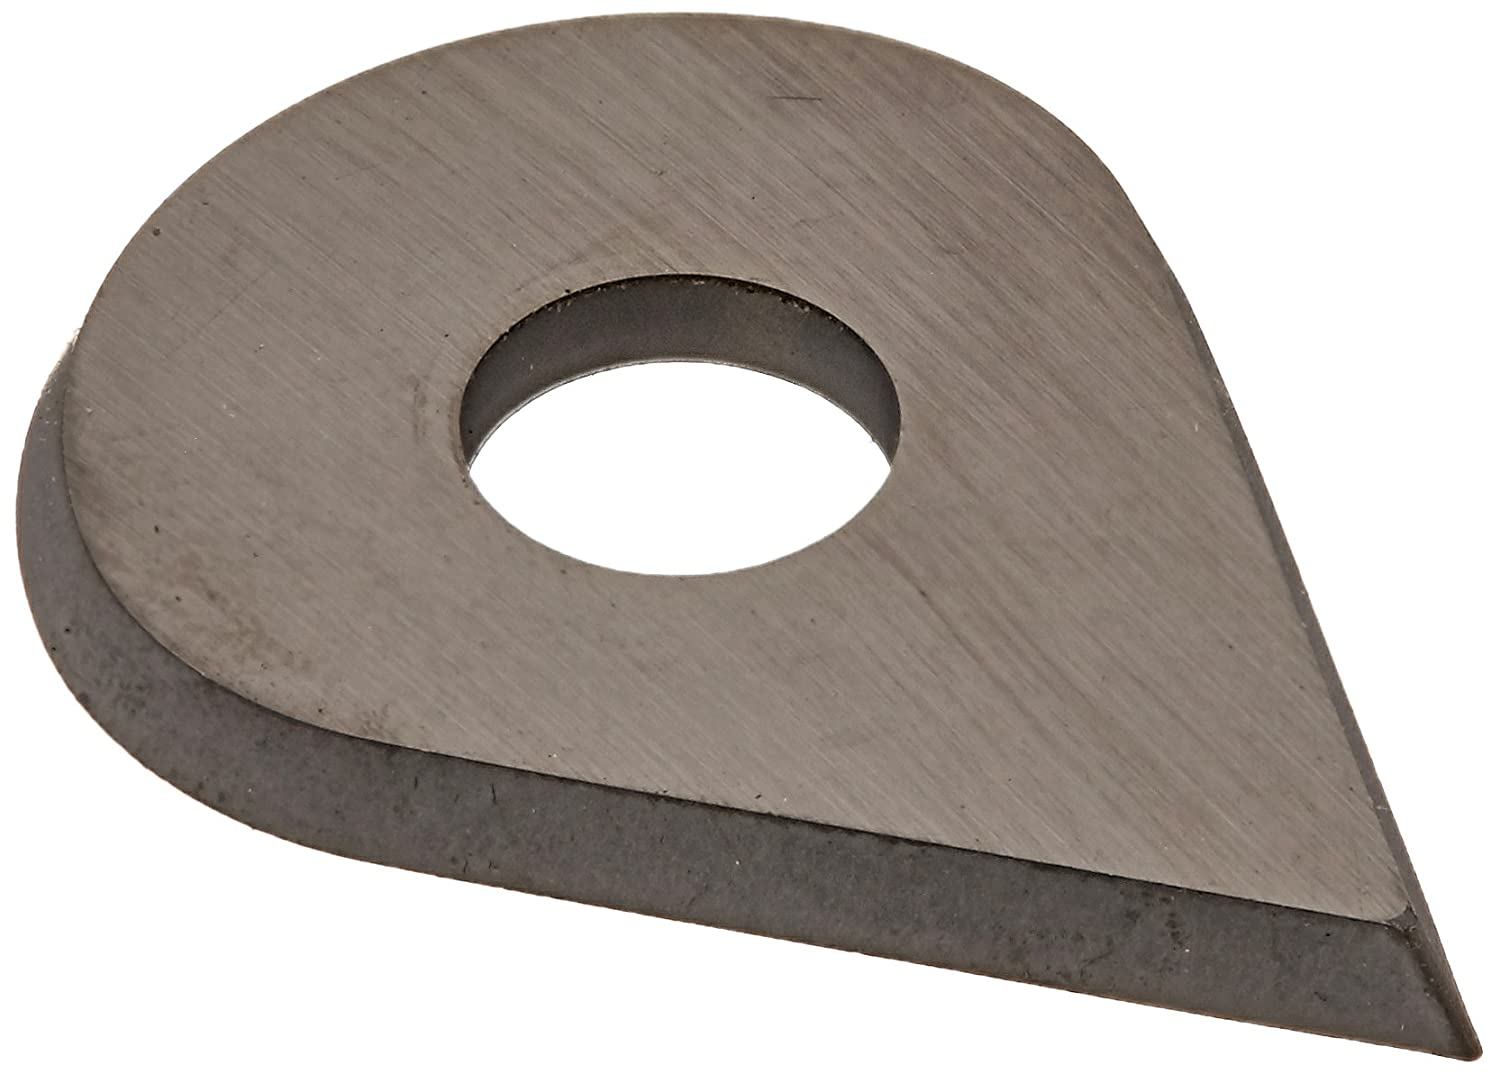 Bahco Heavy Duty 2-Inch Replacement Scraper Blade #442